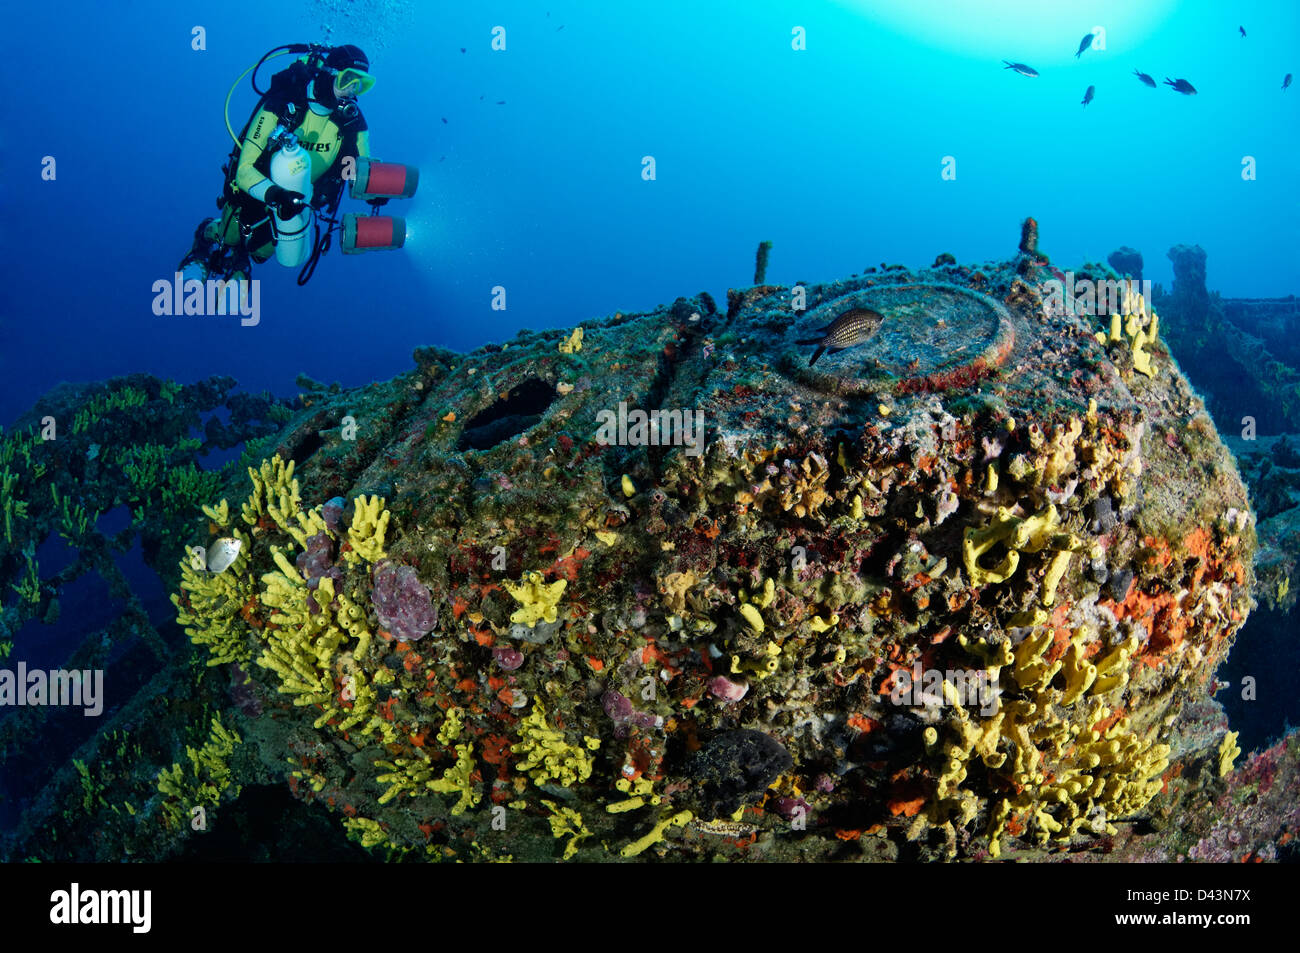 scuba diver and shipwreck Francesca de Rimini and machine room door Island Kaprije Sibenik Vodice Croatia  Mediterranean - Stock Image